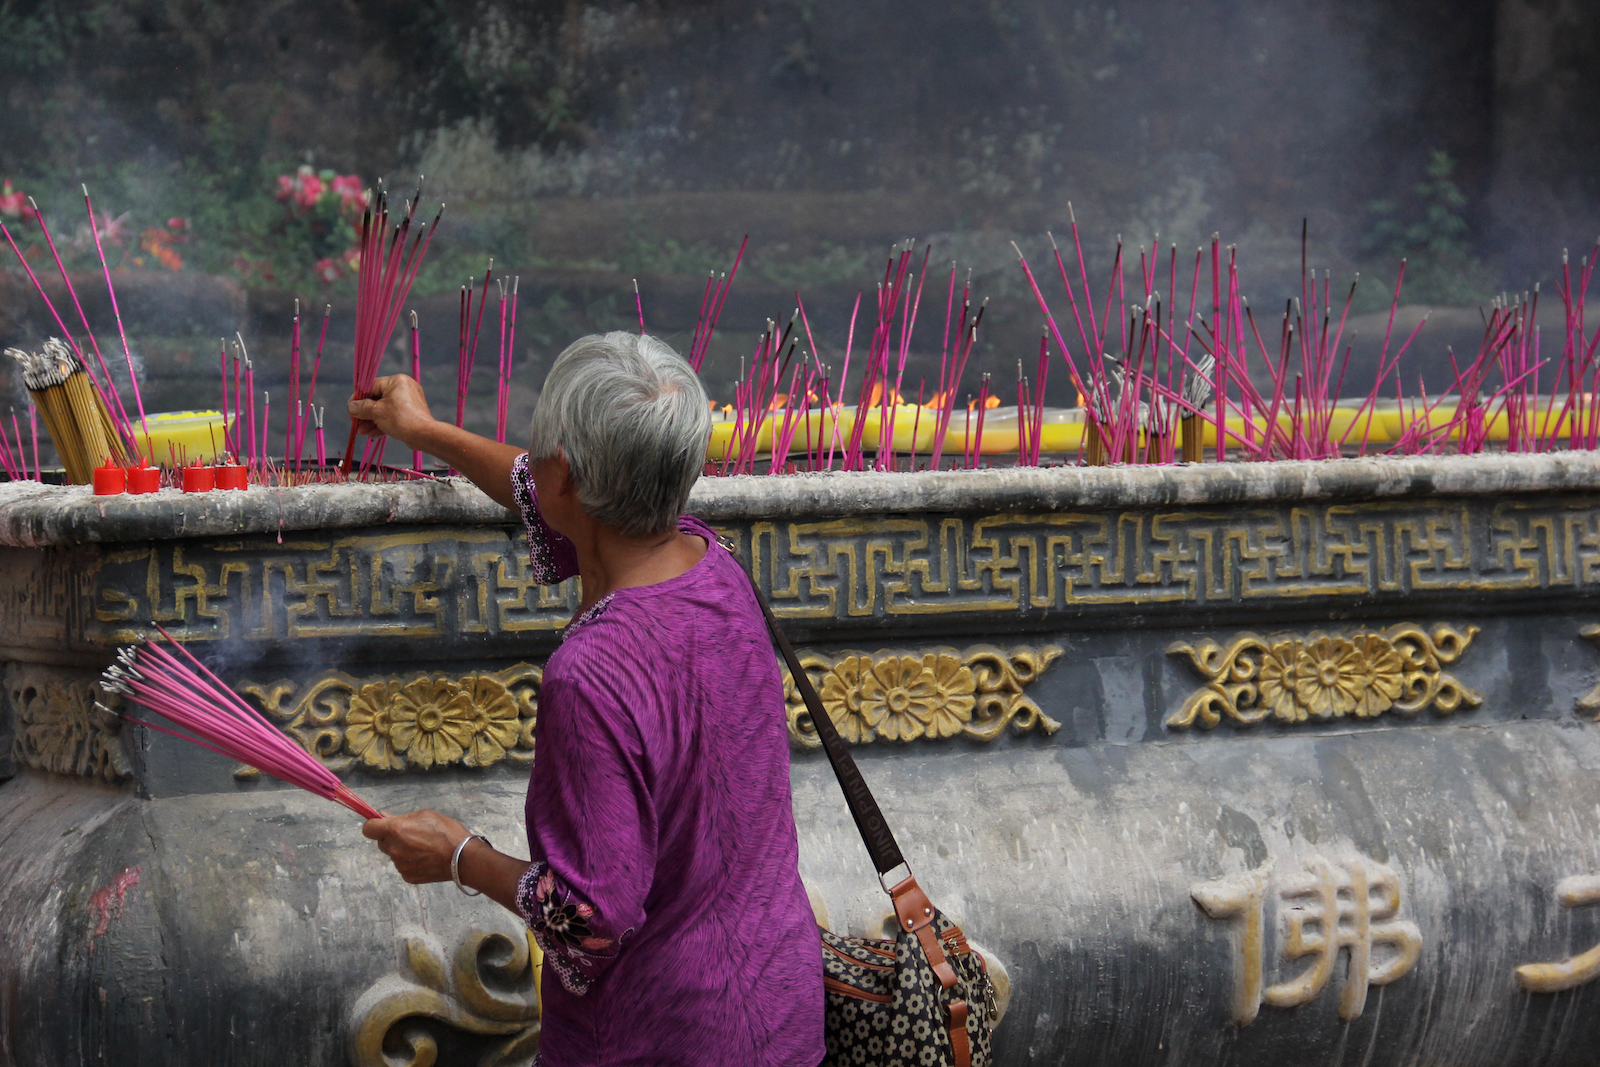 Woman praying at the foot of the Giant Buddha. The purple and pink colors!